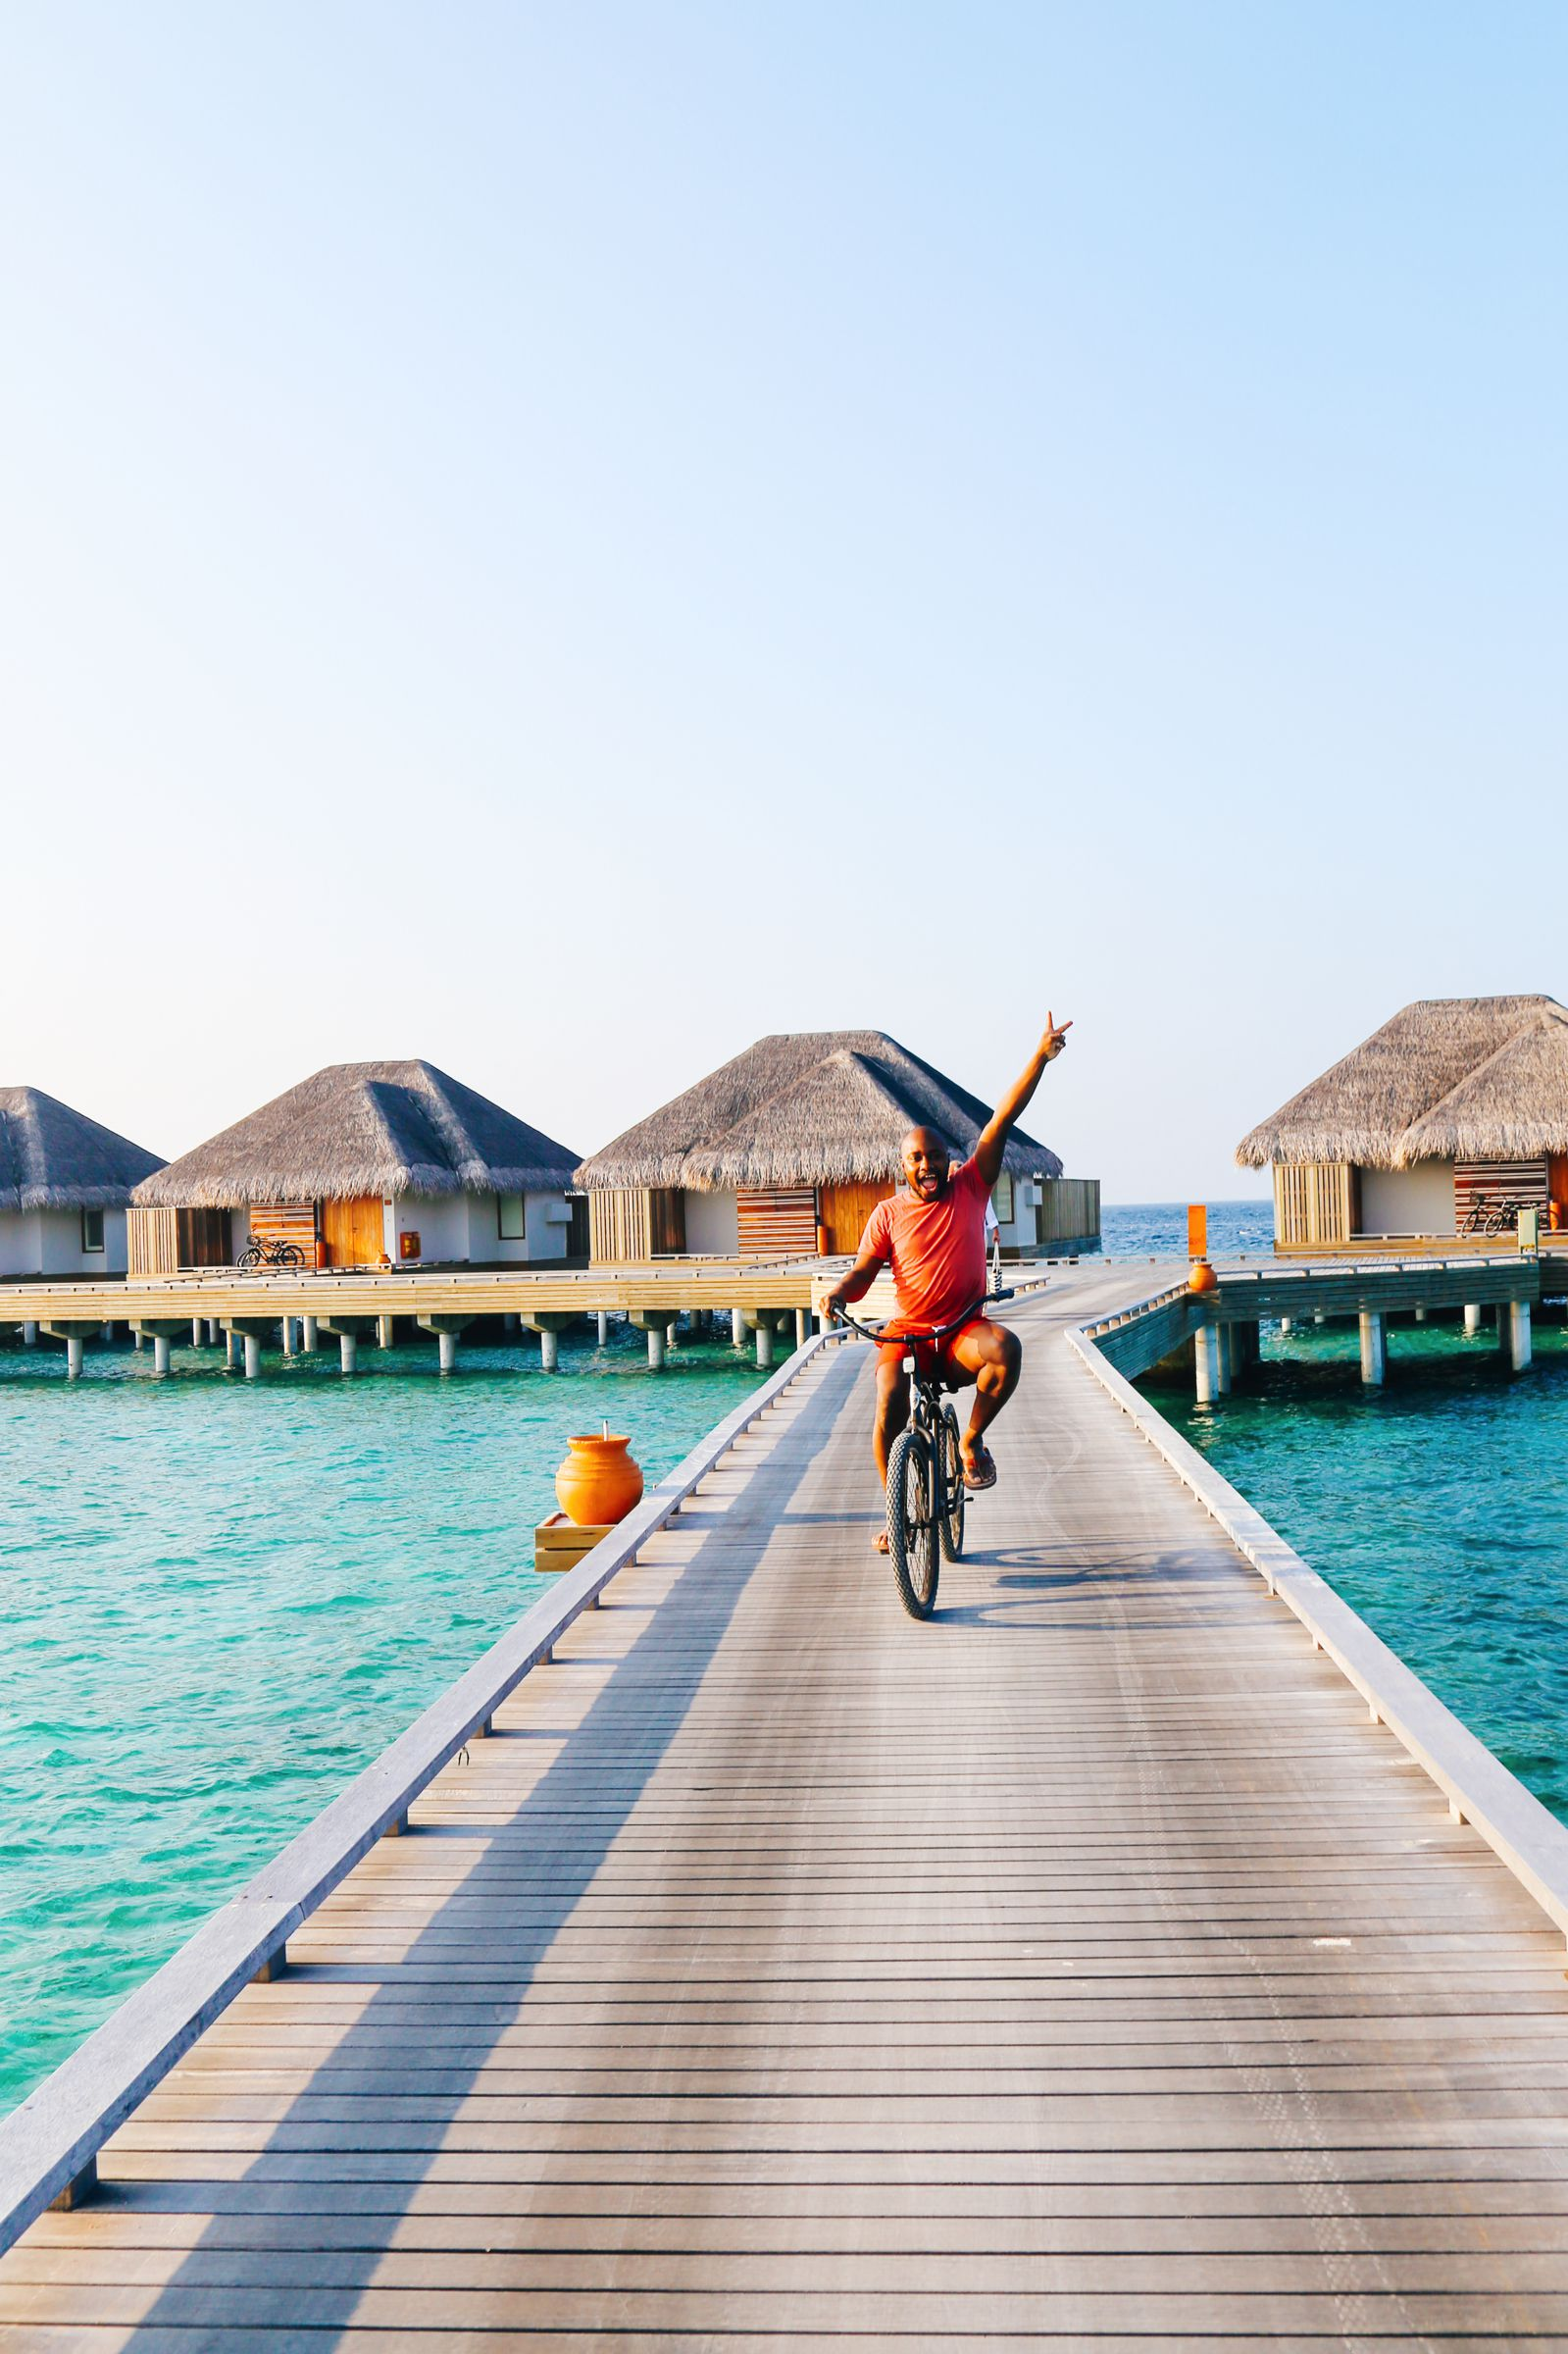 Arrival At The Dusit Thani In The Maldives! (40)